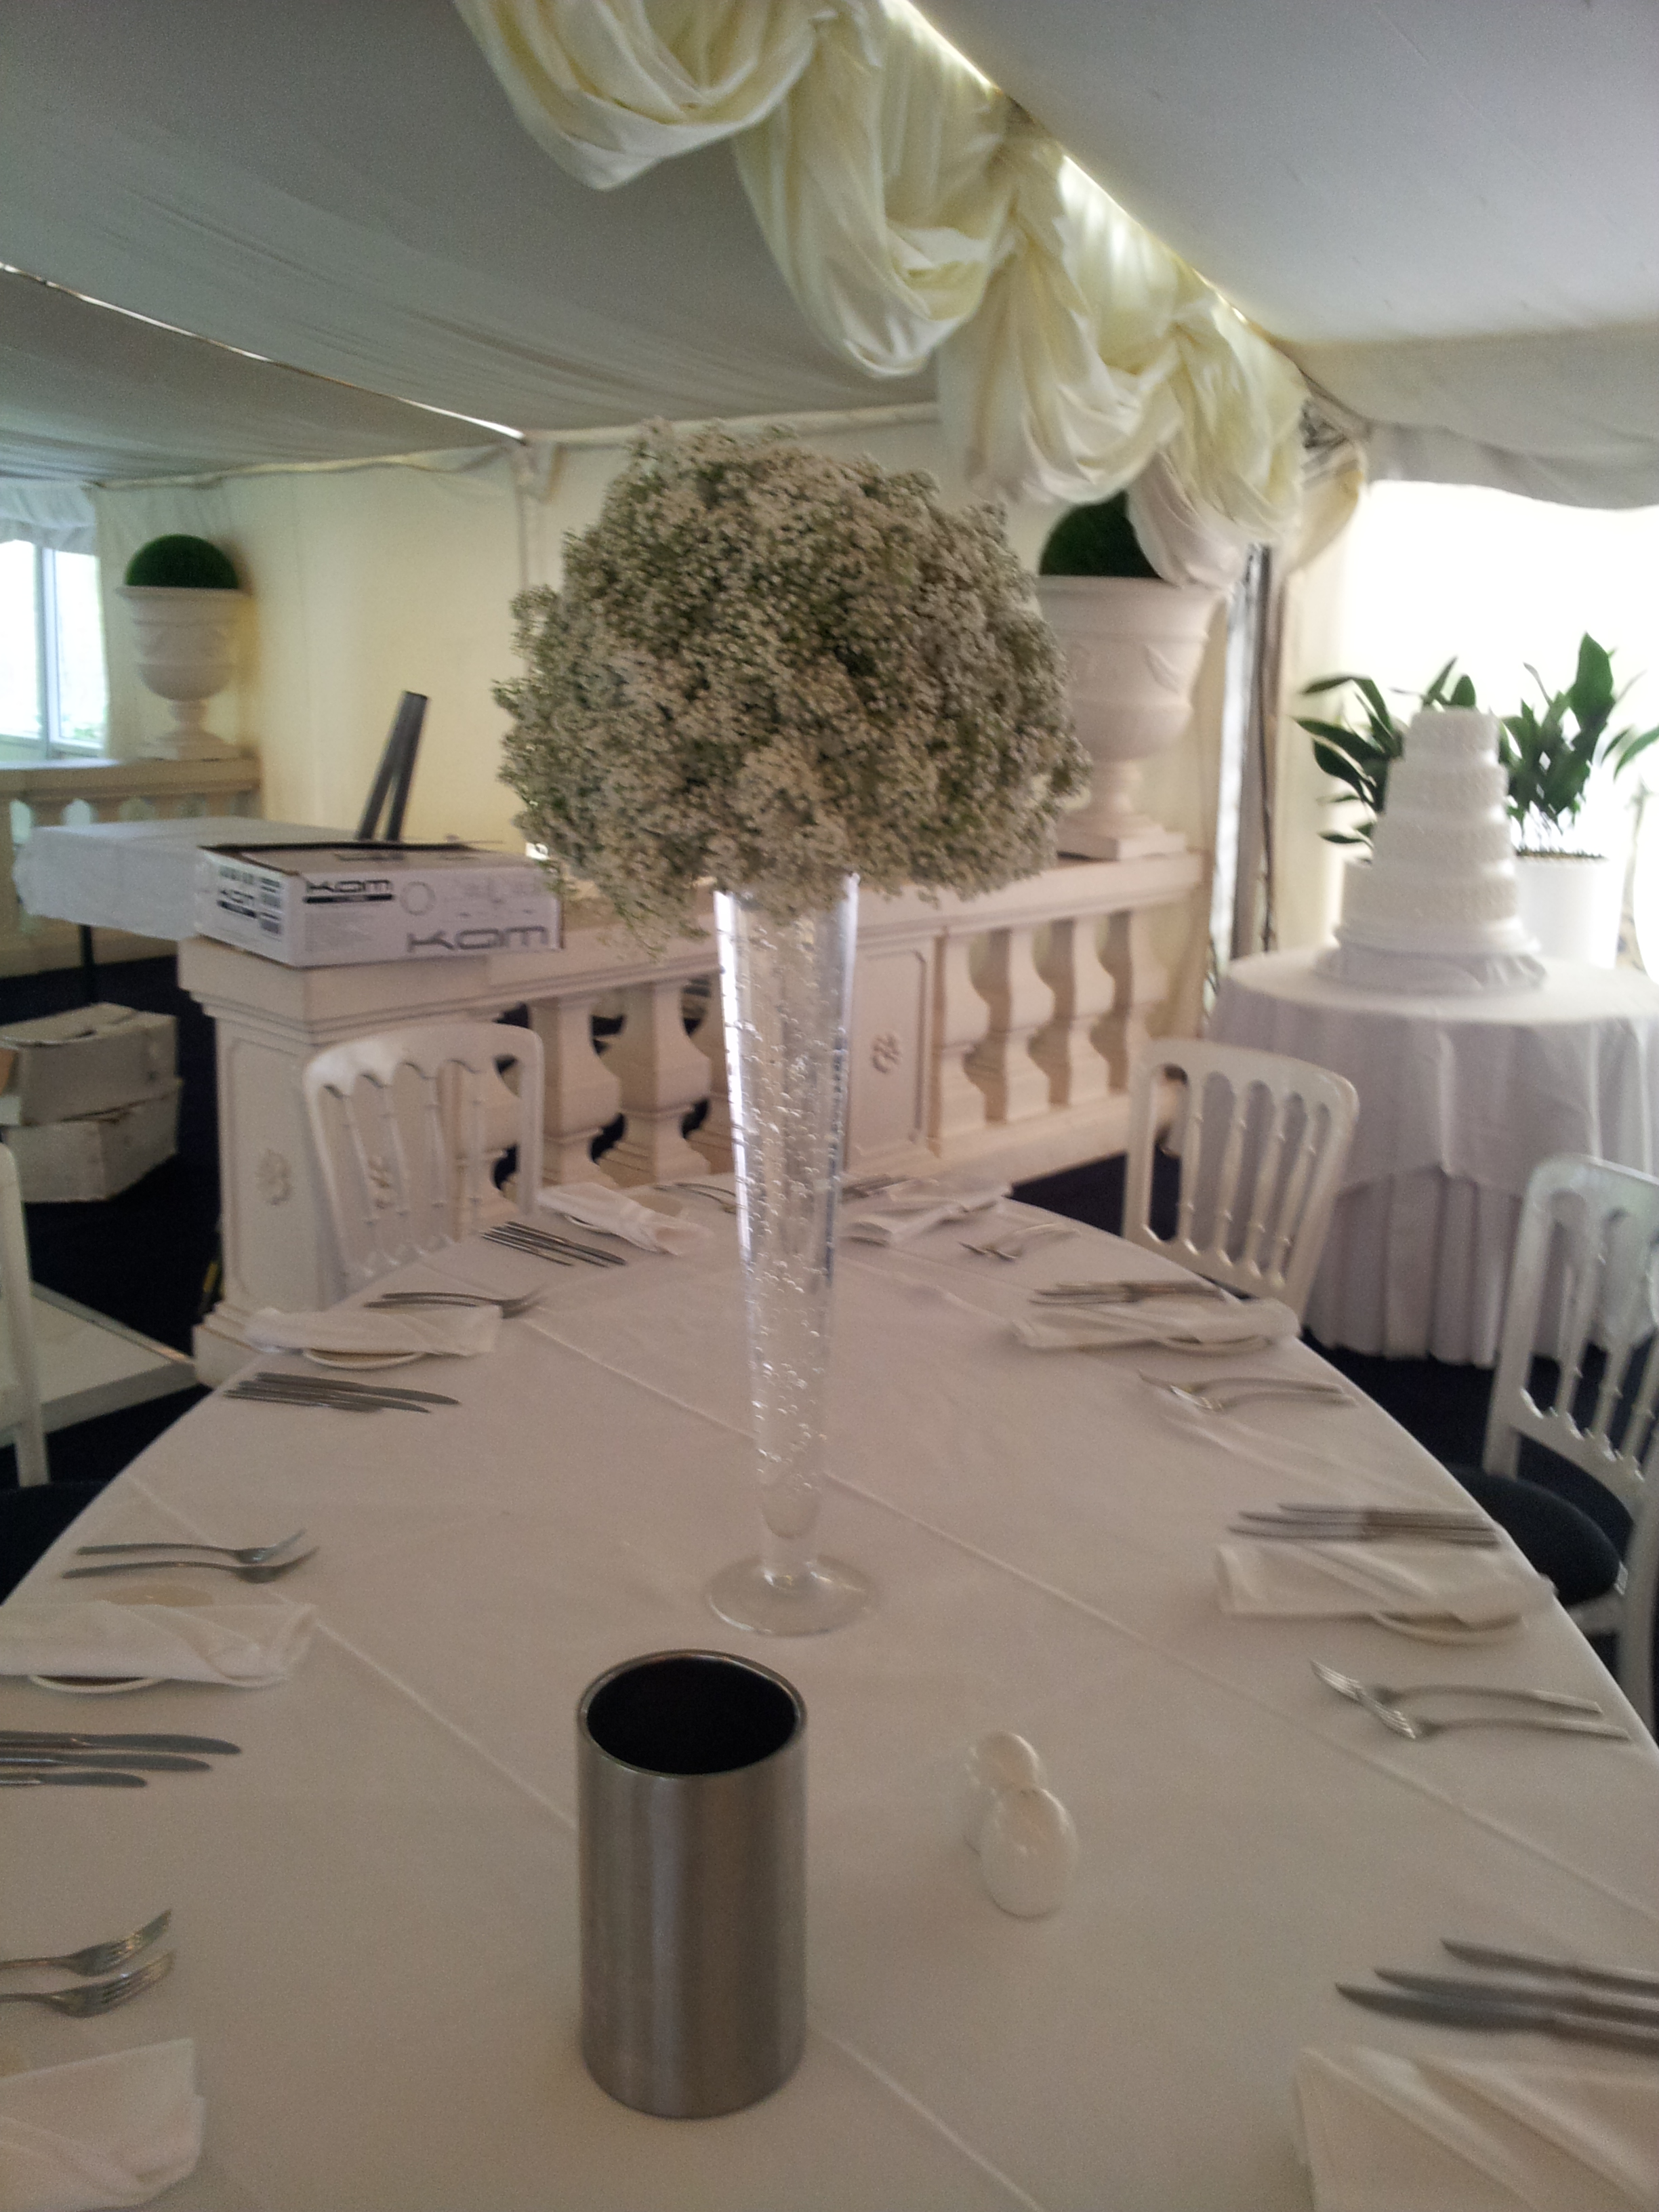 CZH-Wedding-Table-Arrangements-074.jpg